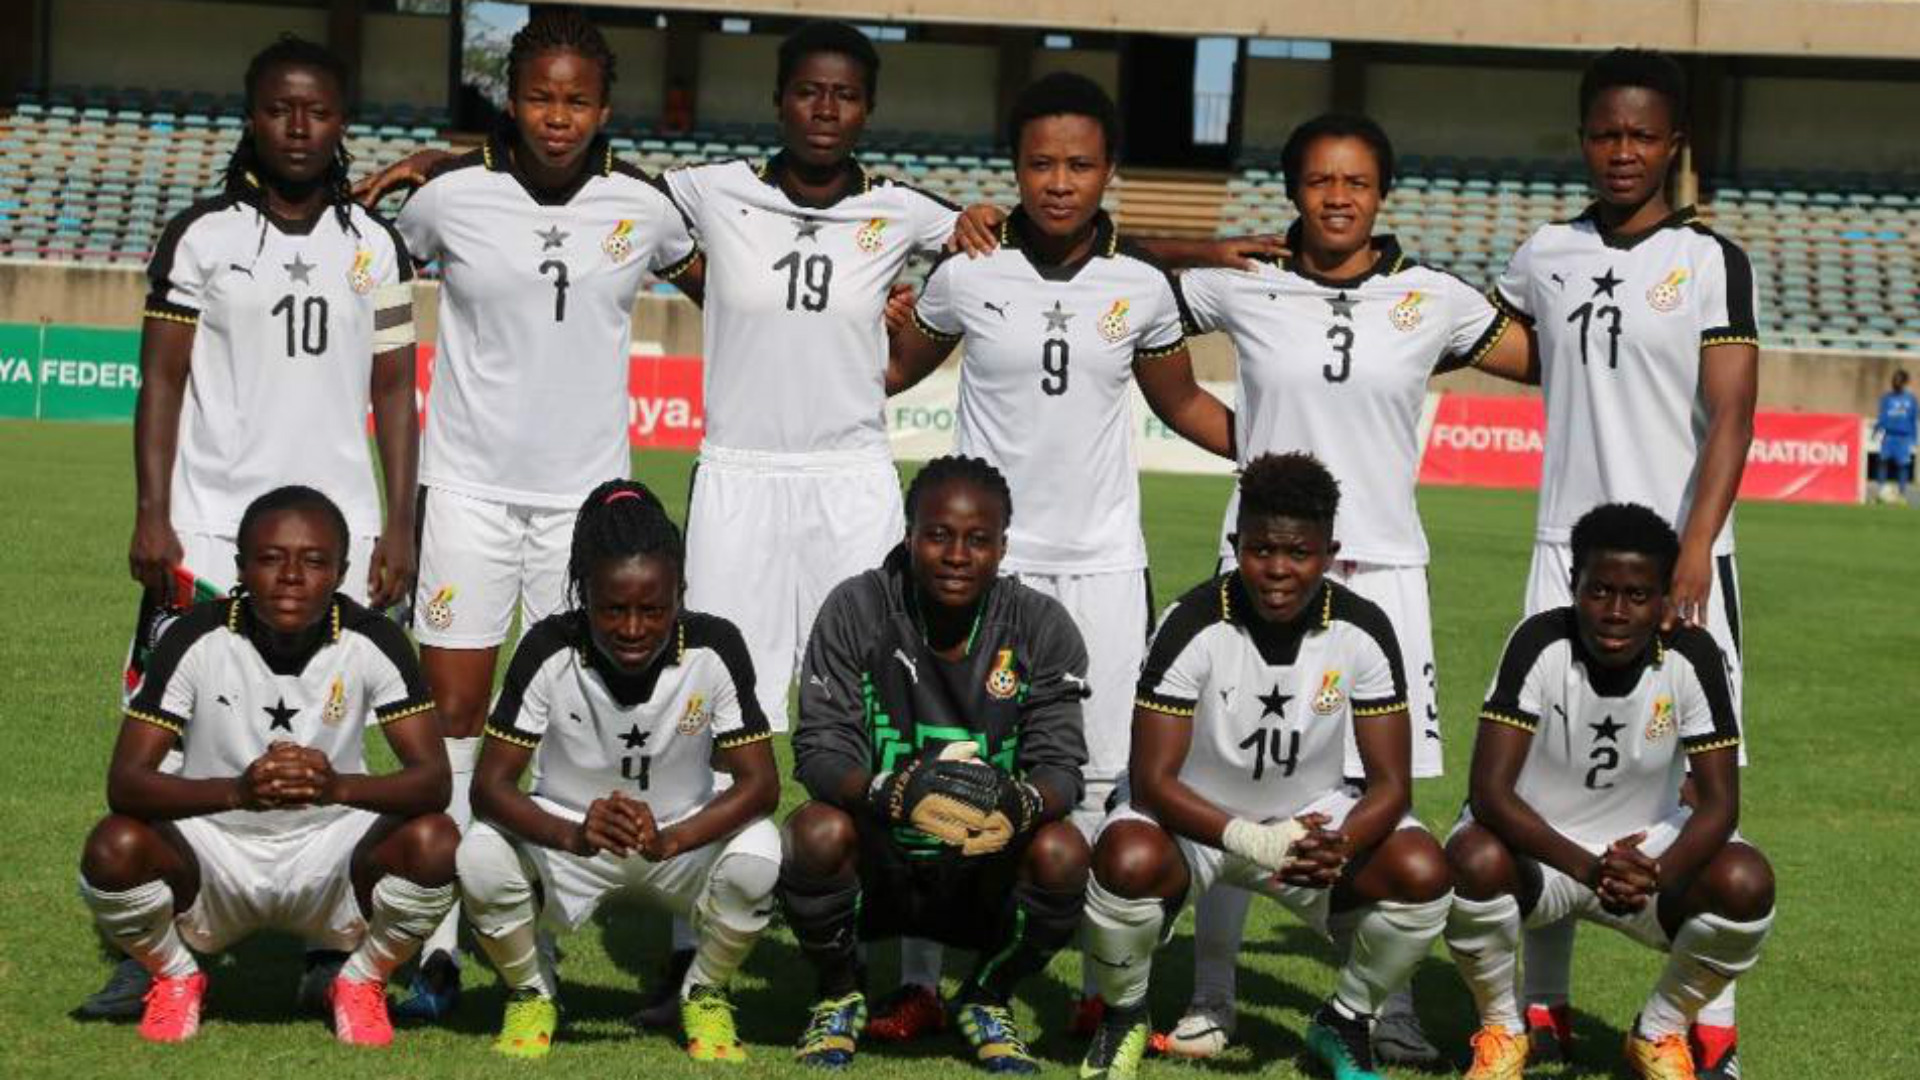 Turkish Women's Cup: Ghana have a fair knowledge of Chile - Tagoe